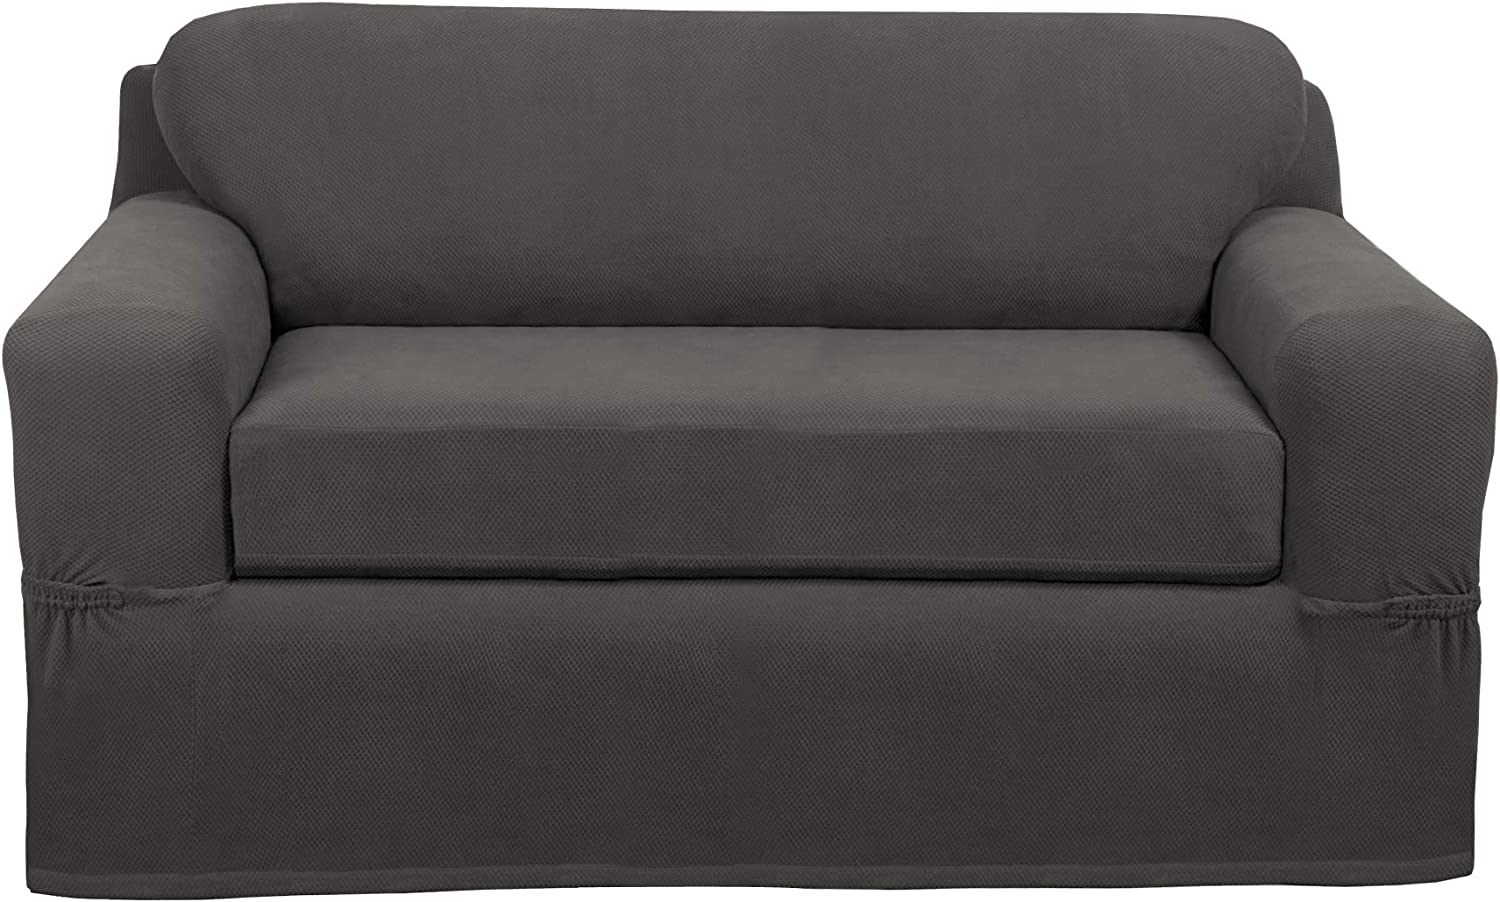 MAYTEX Pixel Ultra Soft Stretch 2 Piece Furniture Cover Loveseat Slipcover, Charcoal